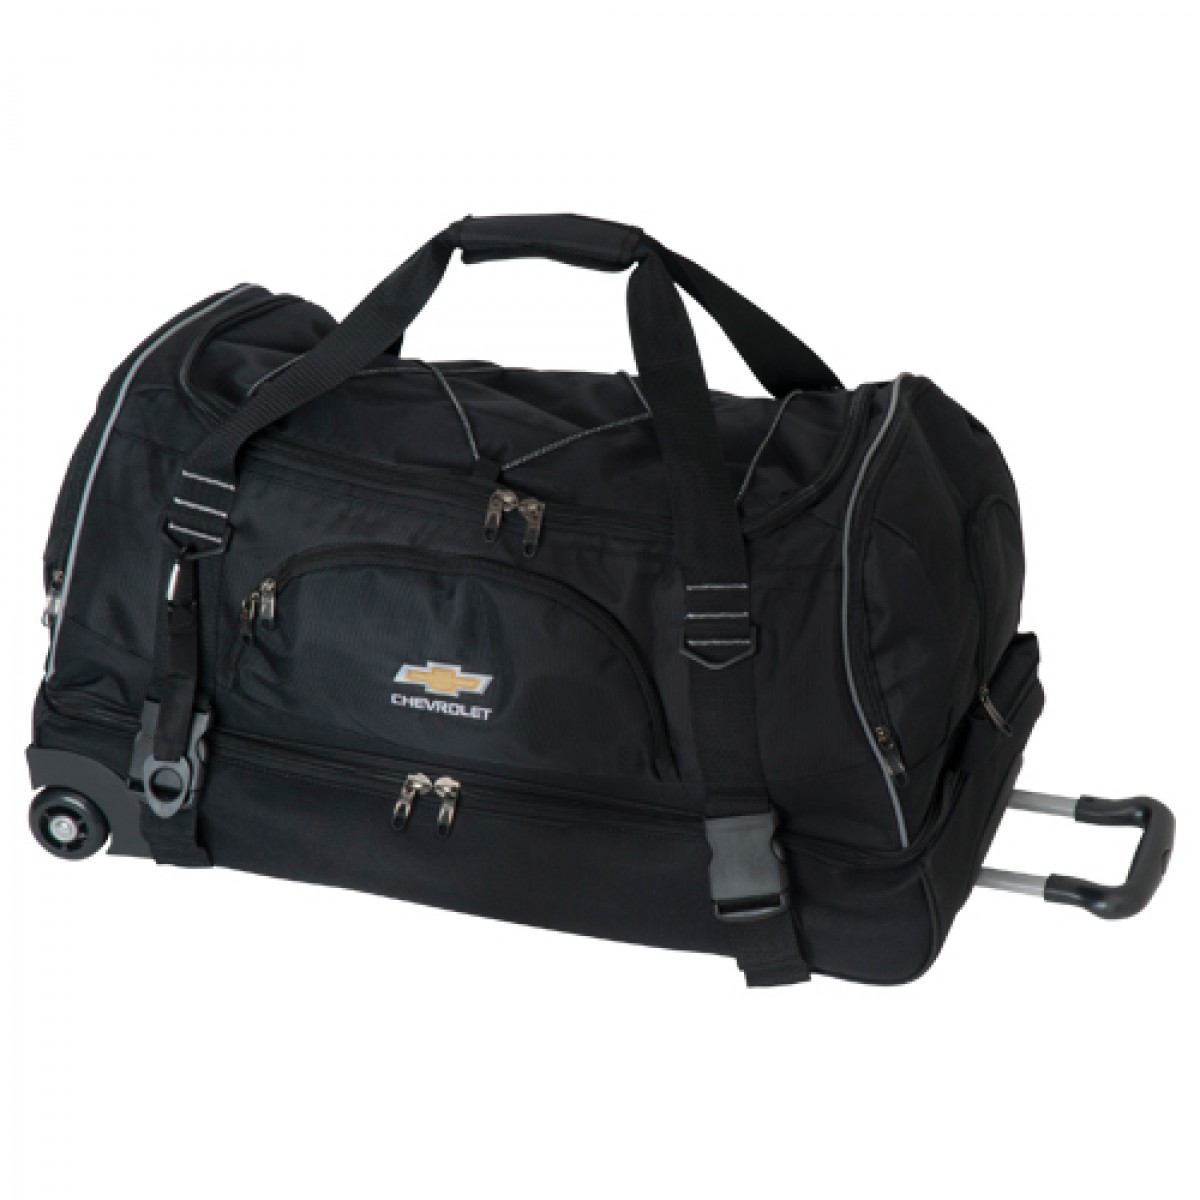 74a41ee13444 Chevrolet Rolling Duffel Bag with Gold Bowtie